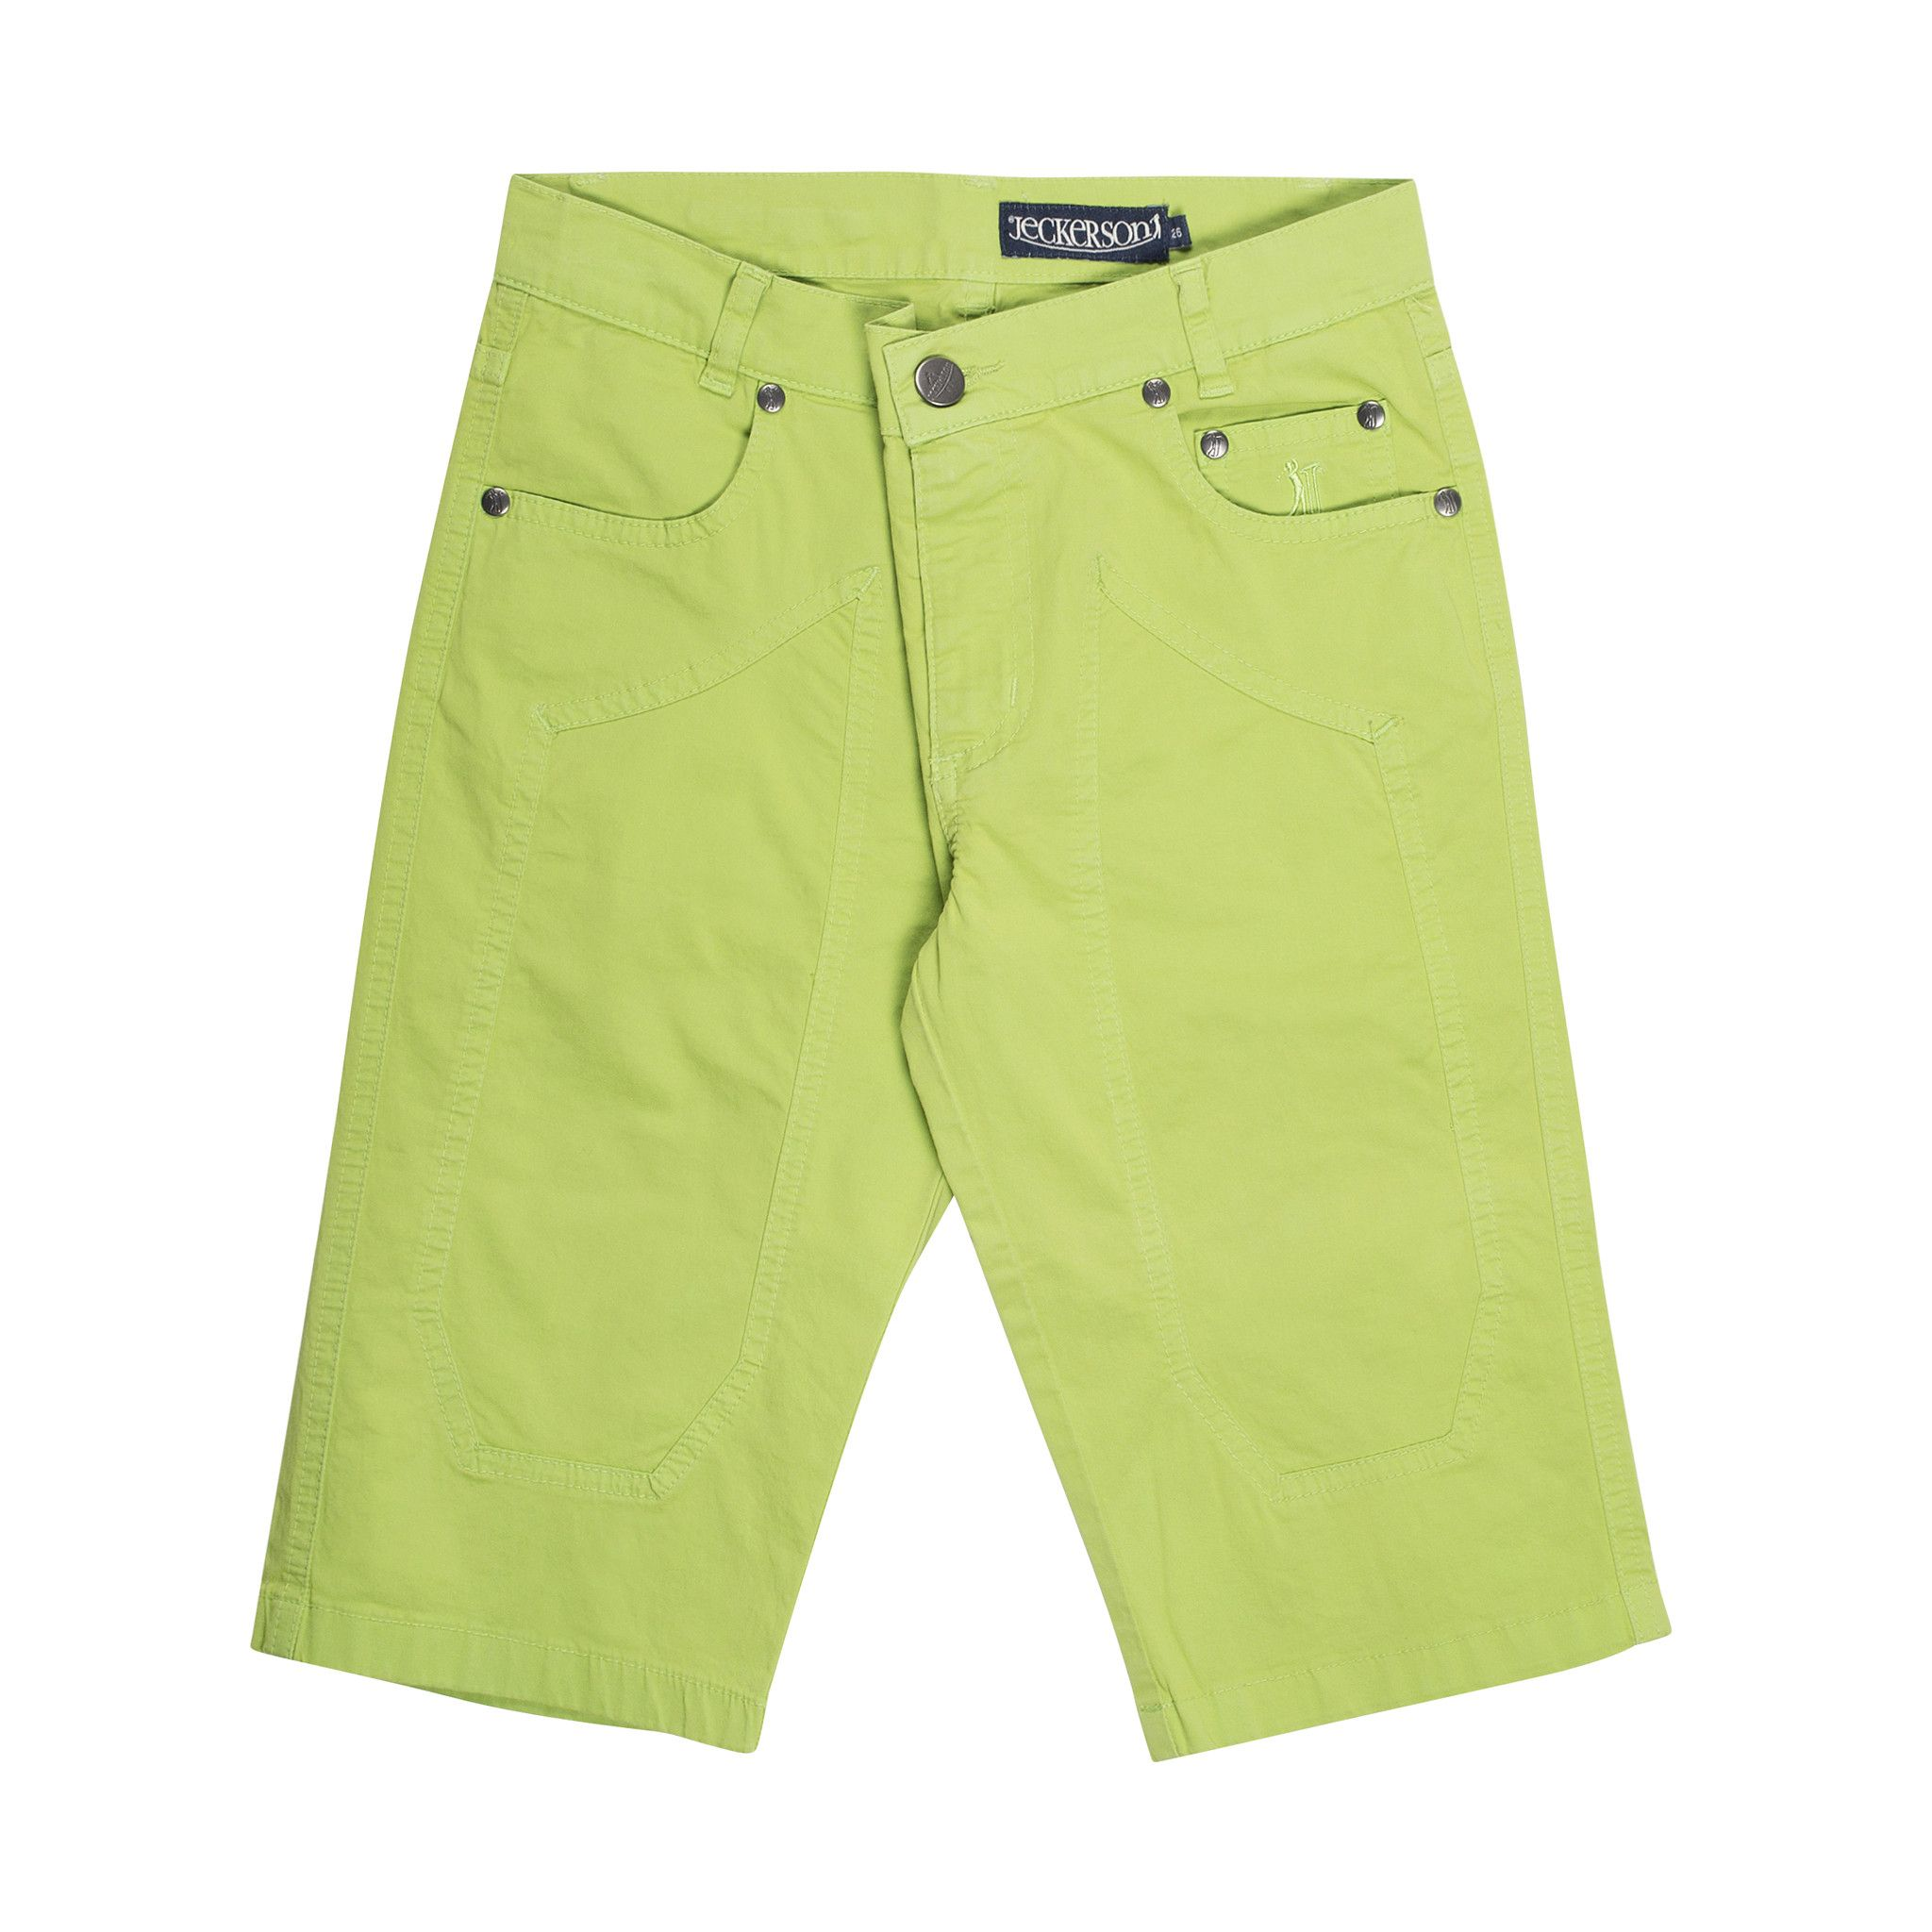 Jeckerson  Shorts In Green